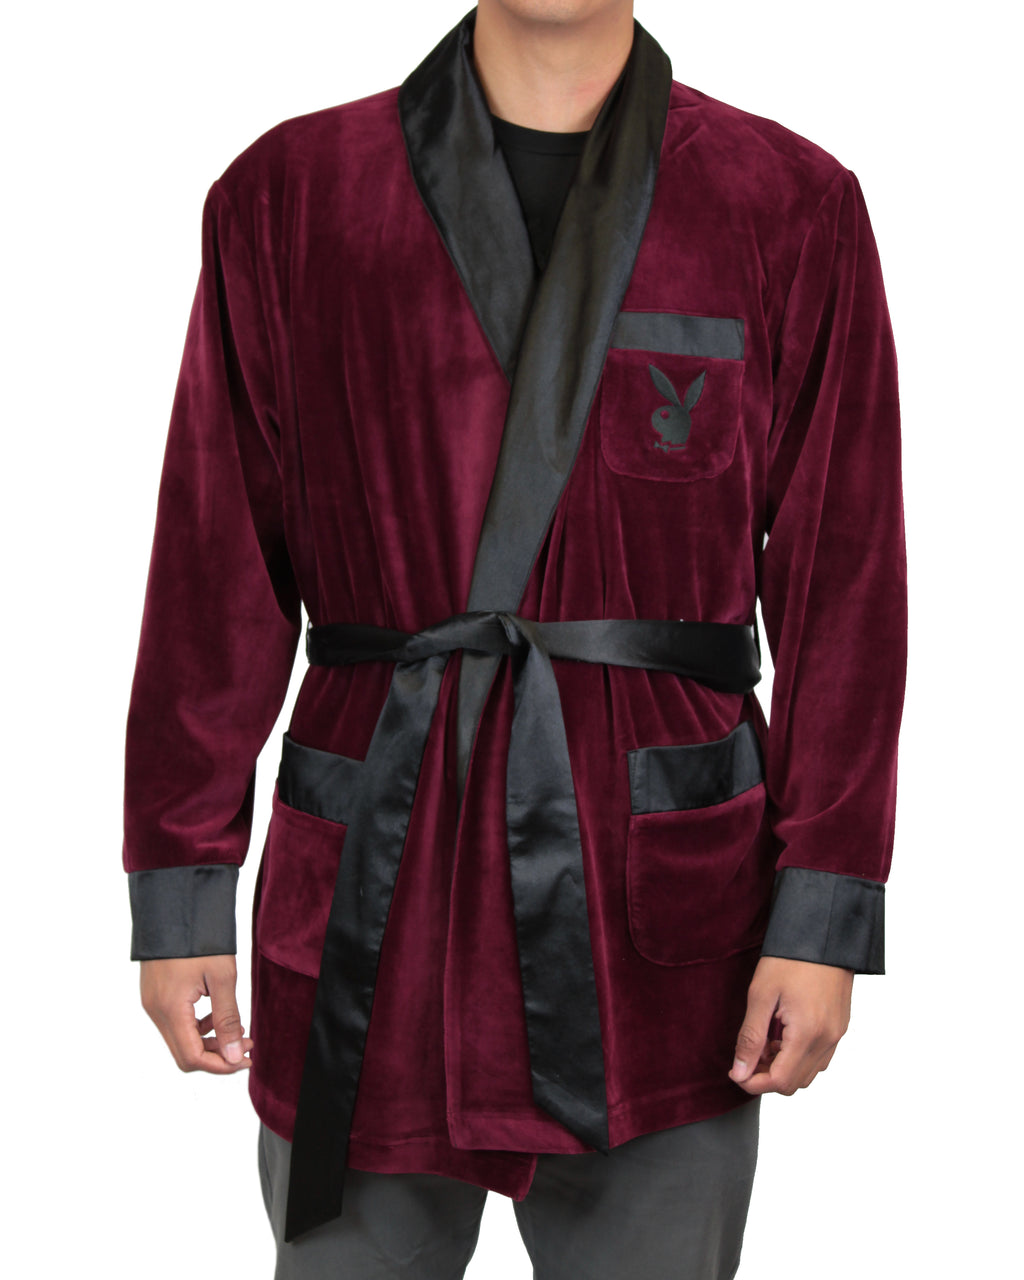 Playboy Men's Robe